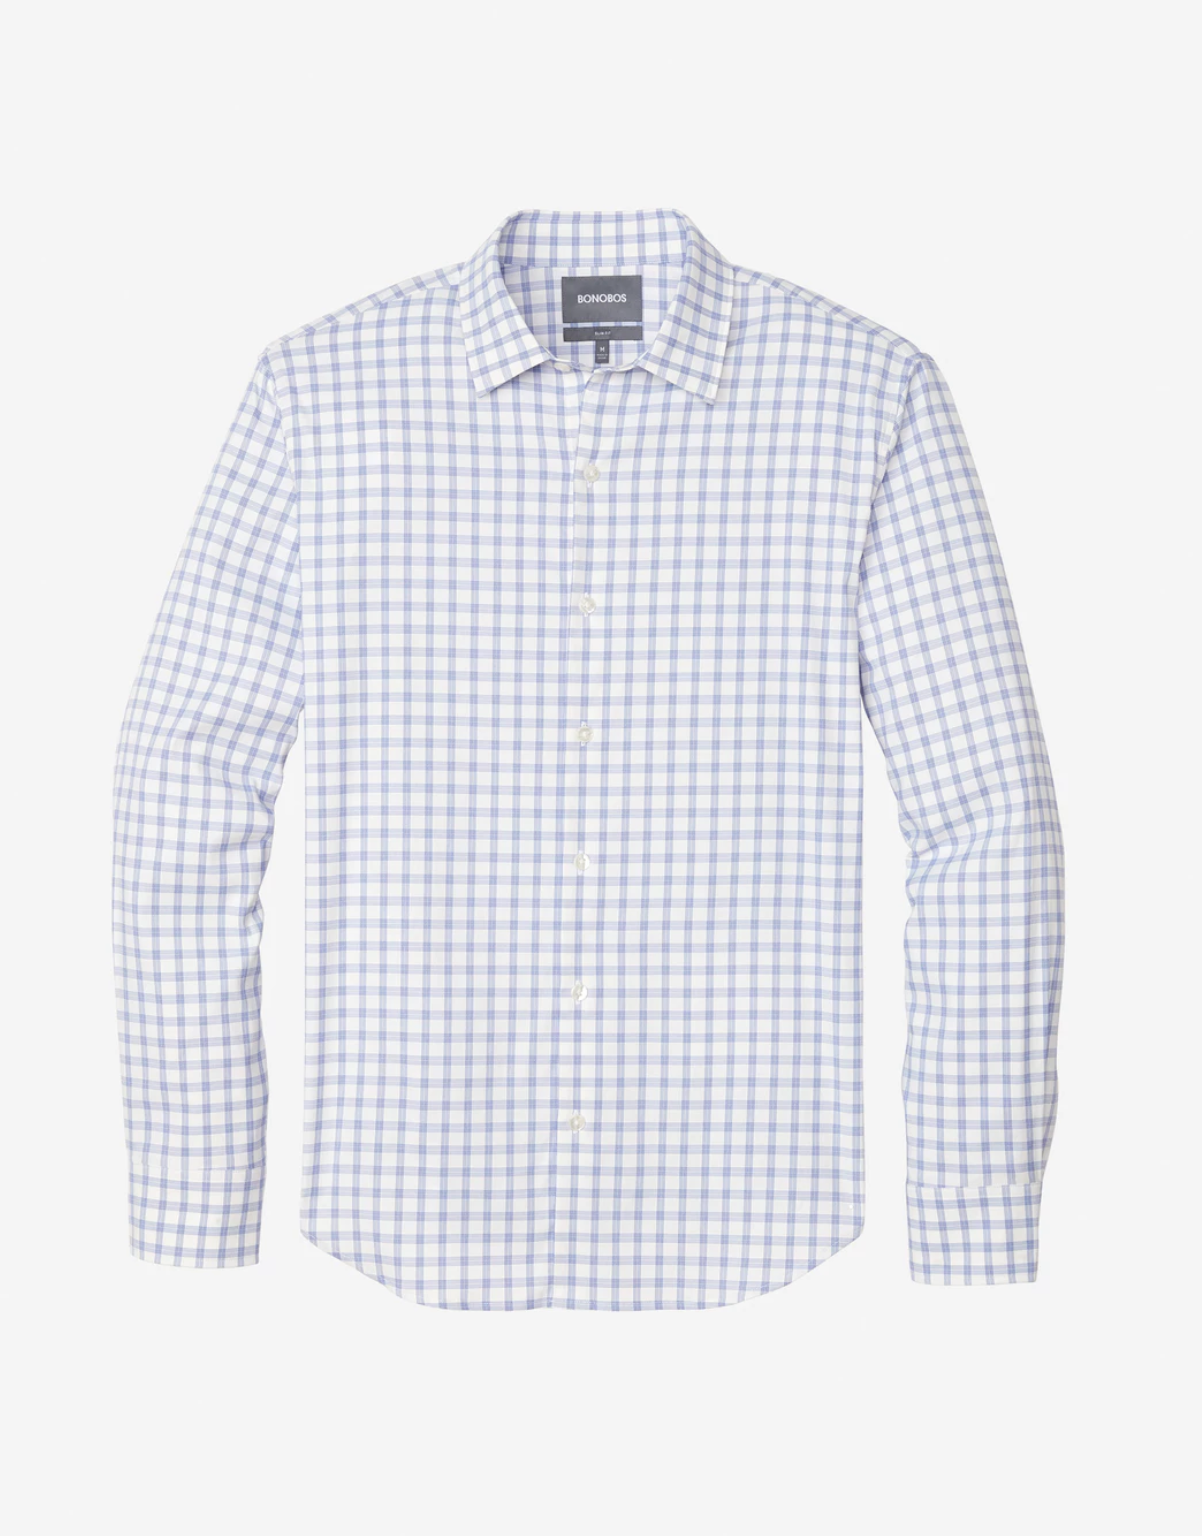 Bonobos Tech Check Button Down - RUST & Co.